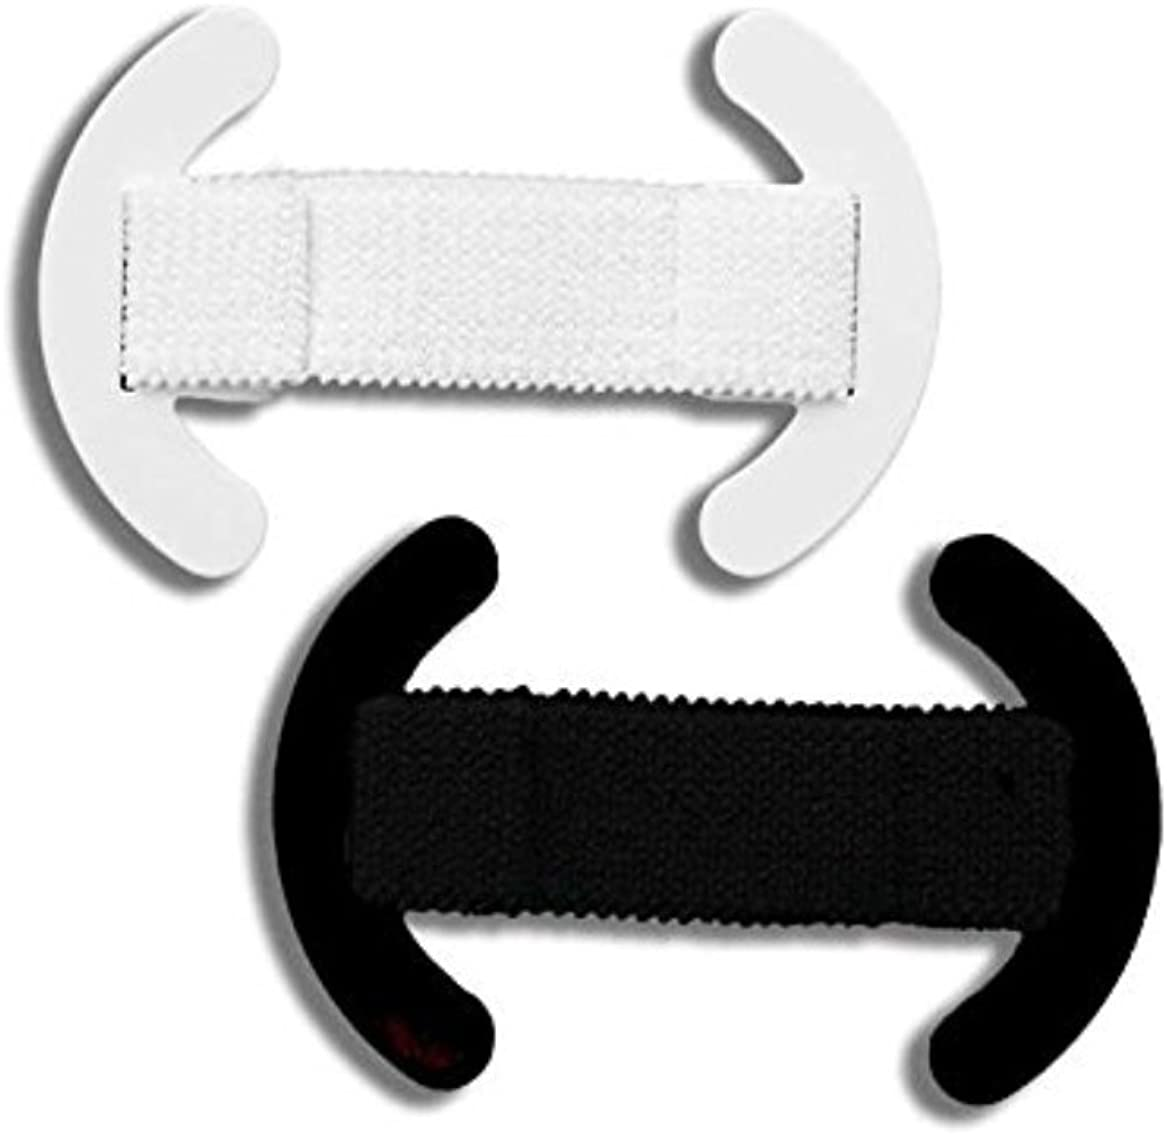 Bra strap clip made for comfort 2pk stretch holder retainer anti-slip shoulder control concealer hides gives added lift and support size 1 Black/White 100% USA Made patented